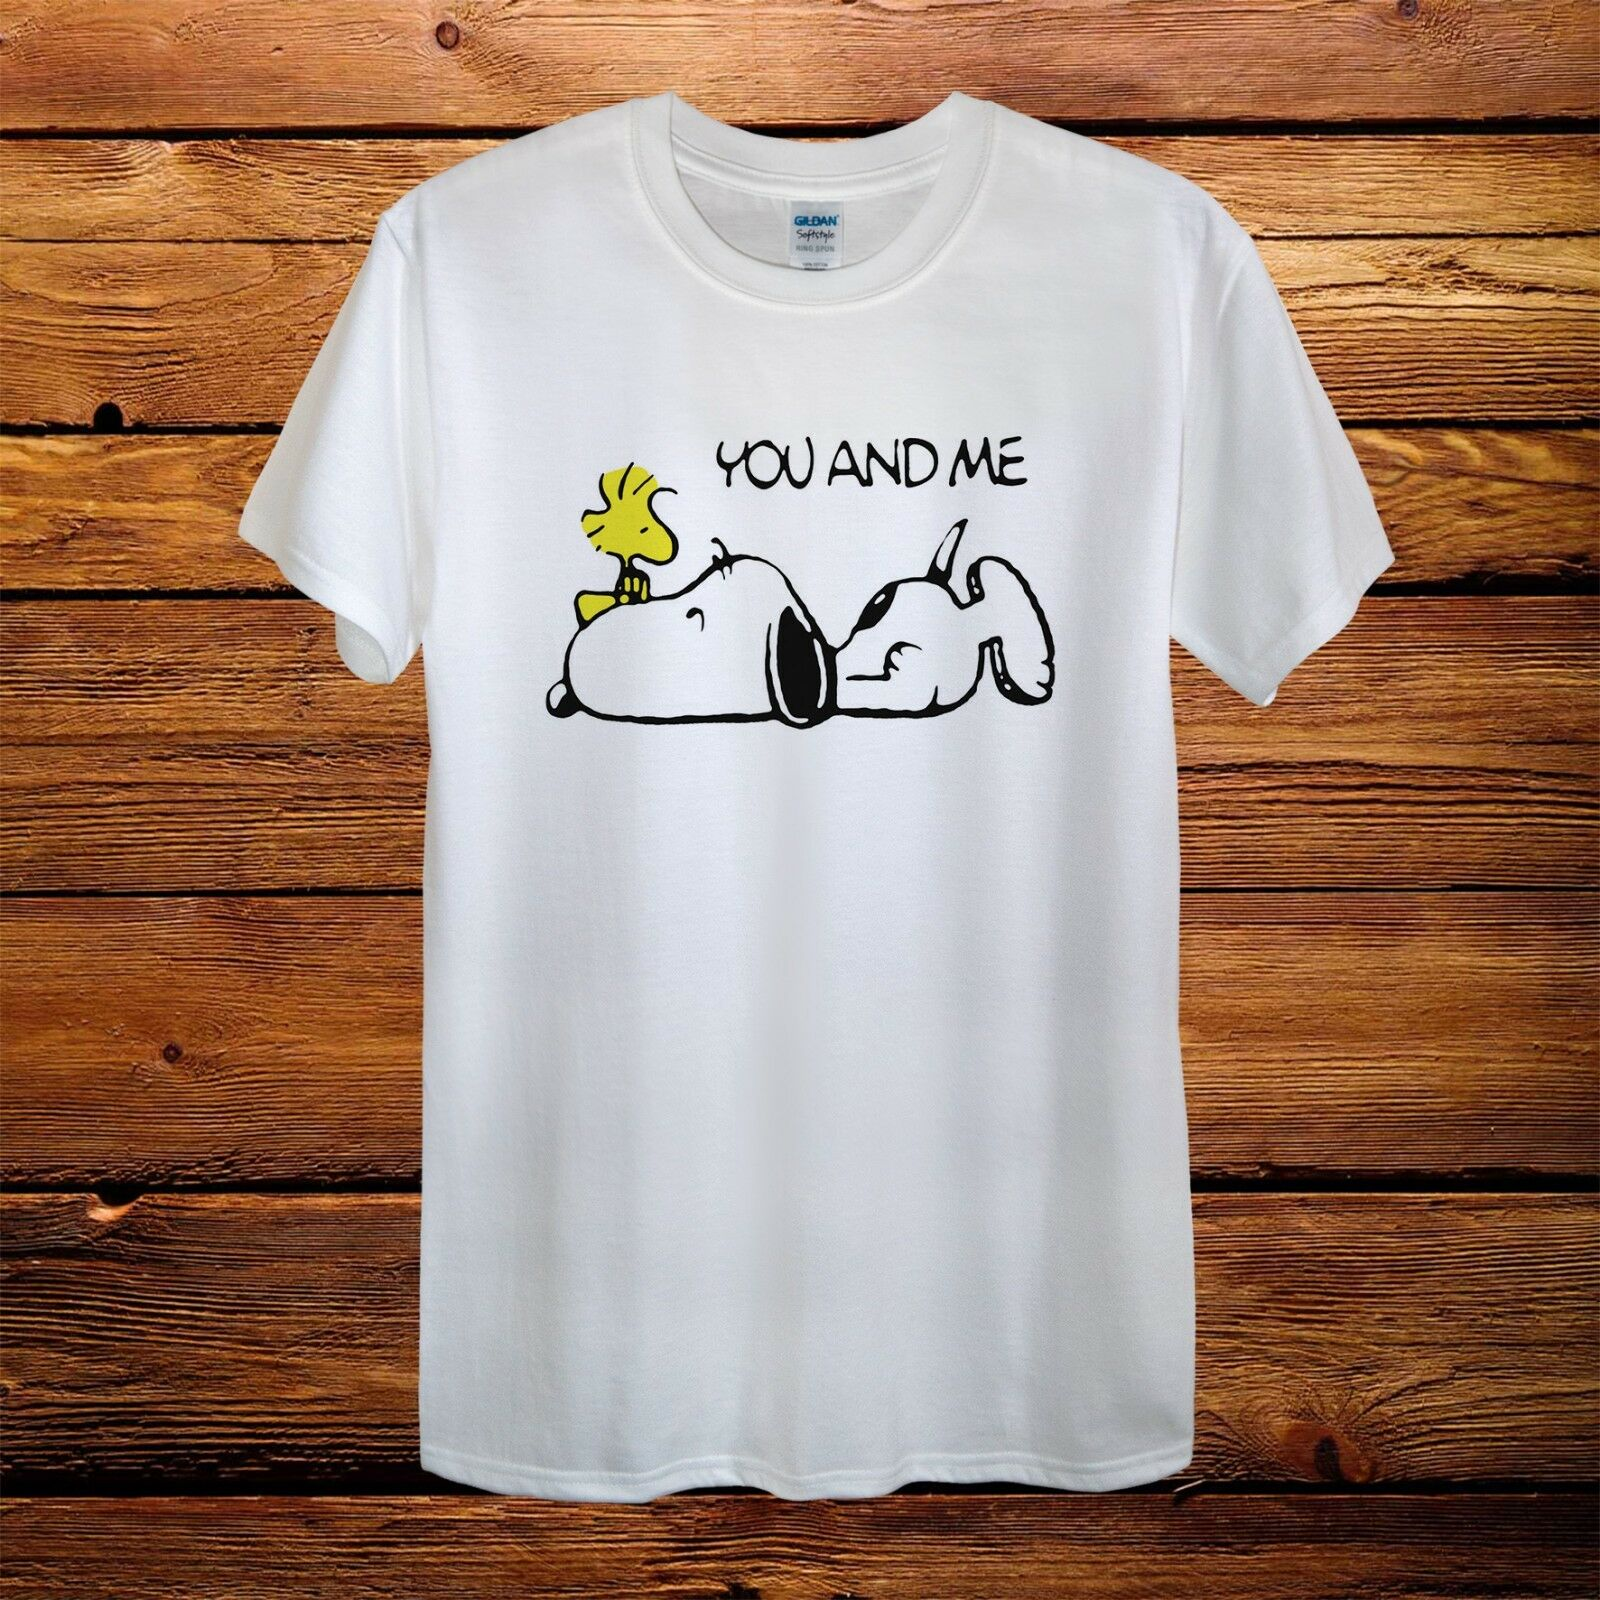 You And Me Snoopy Dog Woodstock Peanuts Design T-Shirt Men Unisex Women Fitted image